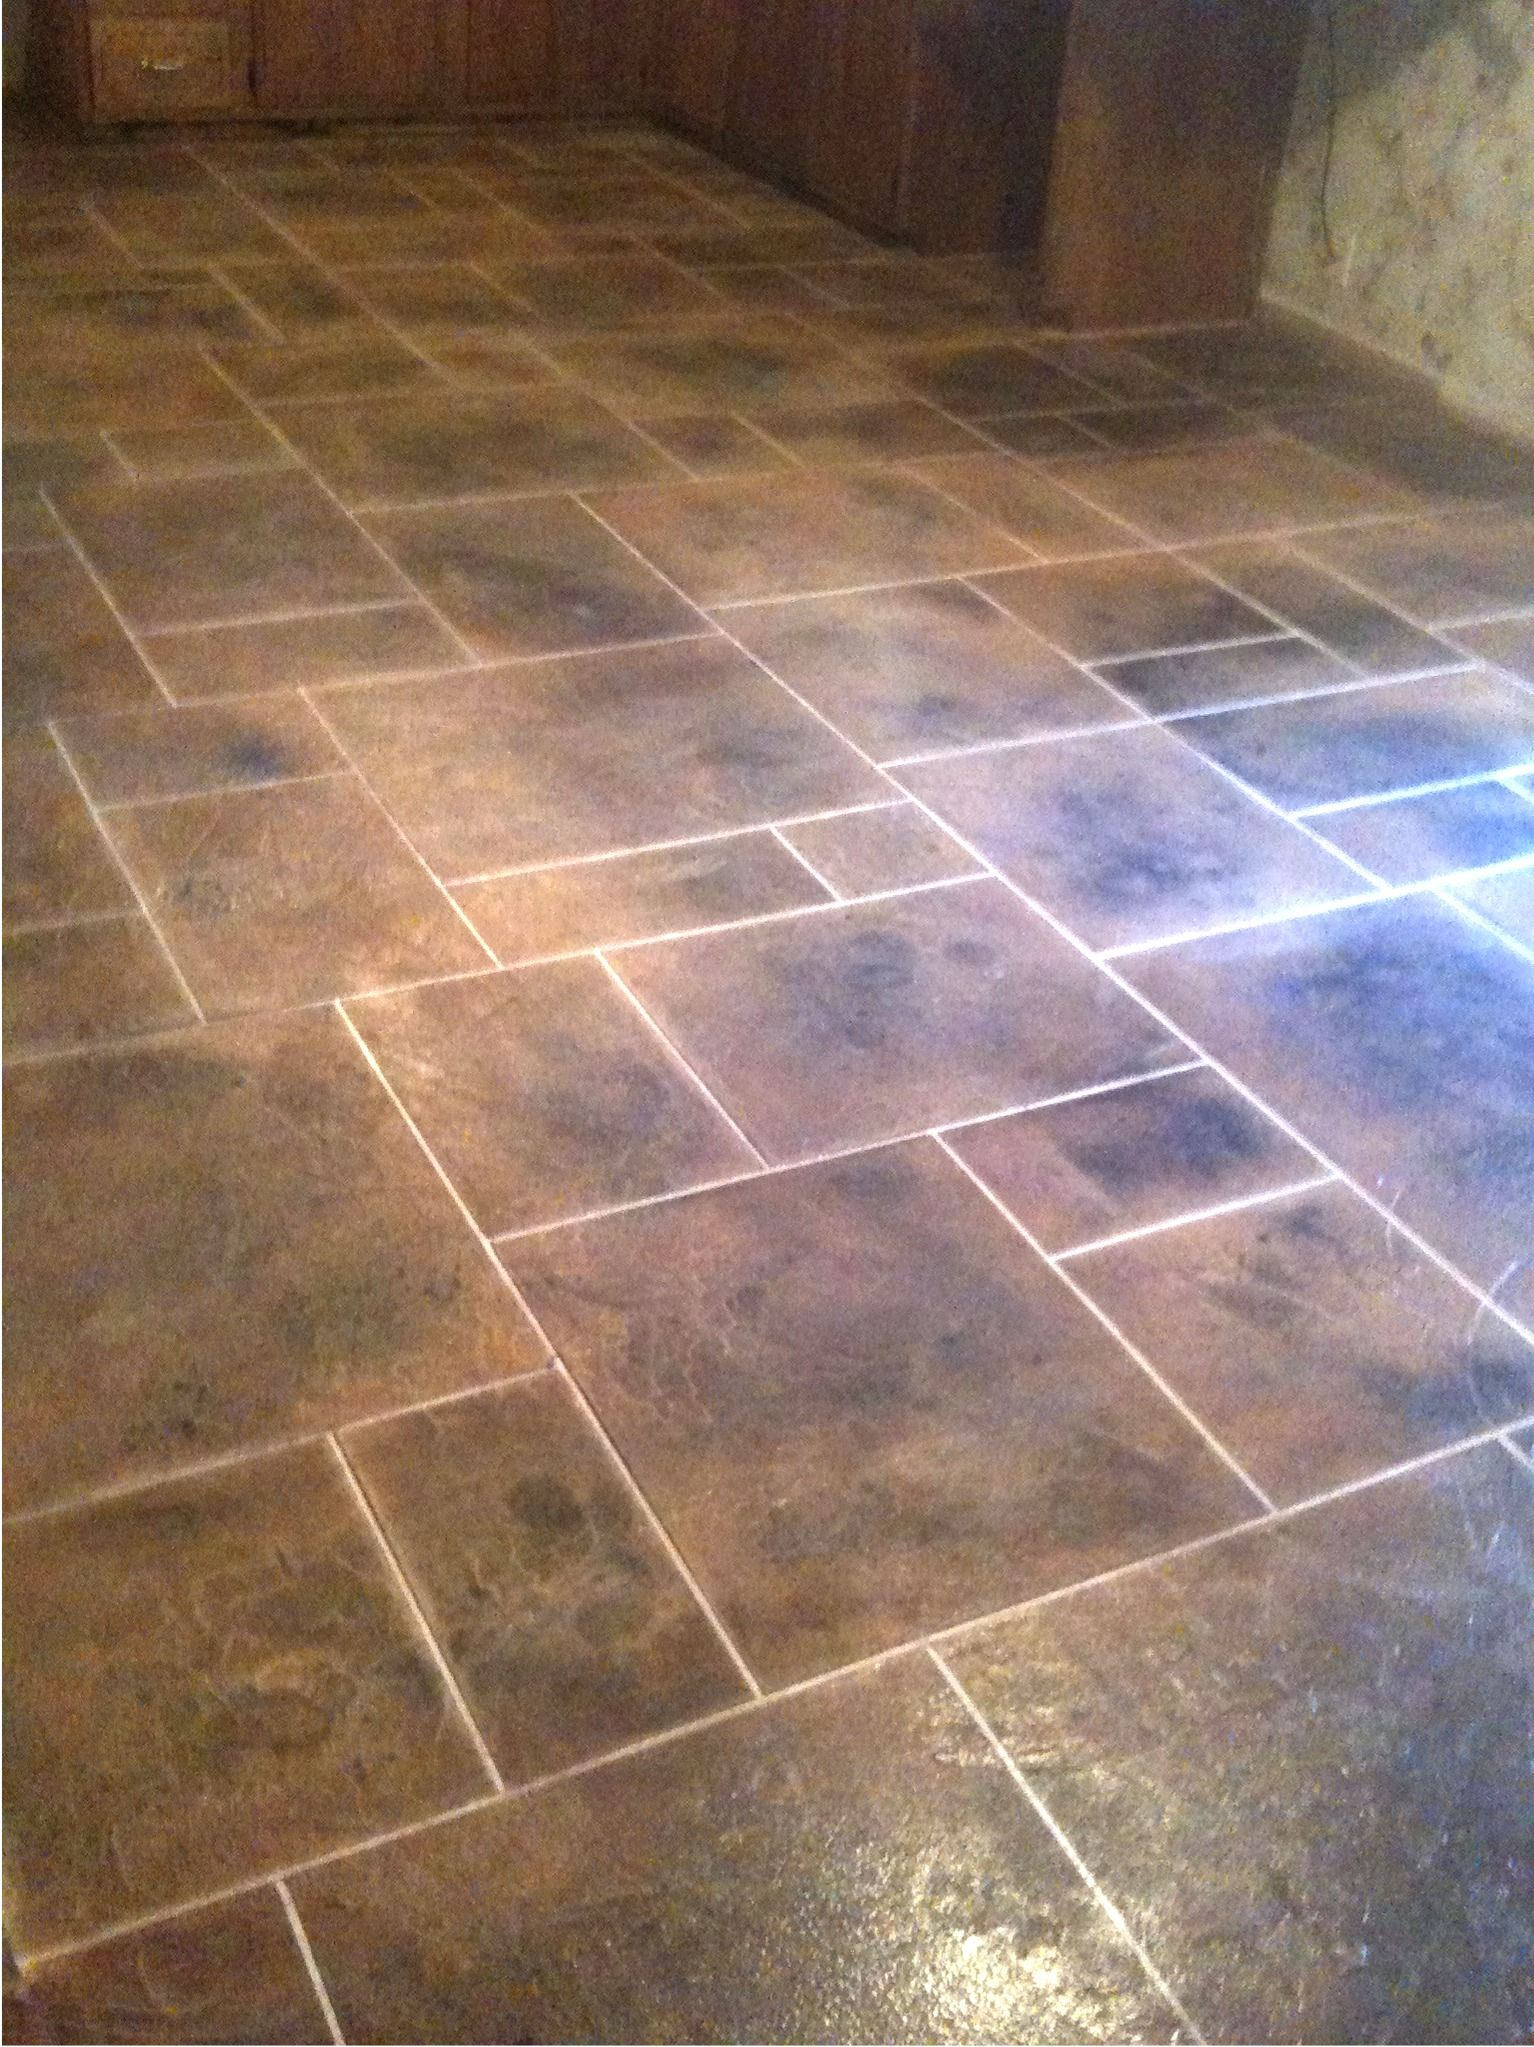 Kitchen floor tile patterns concrete overlay random pattern stone tile kitchen floor in - Simple kitchen tiles ...